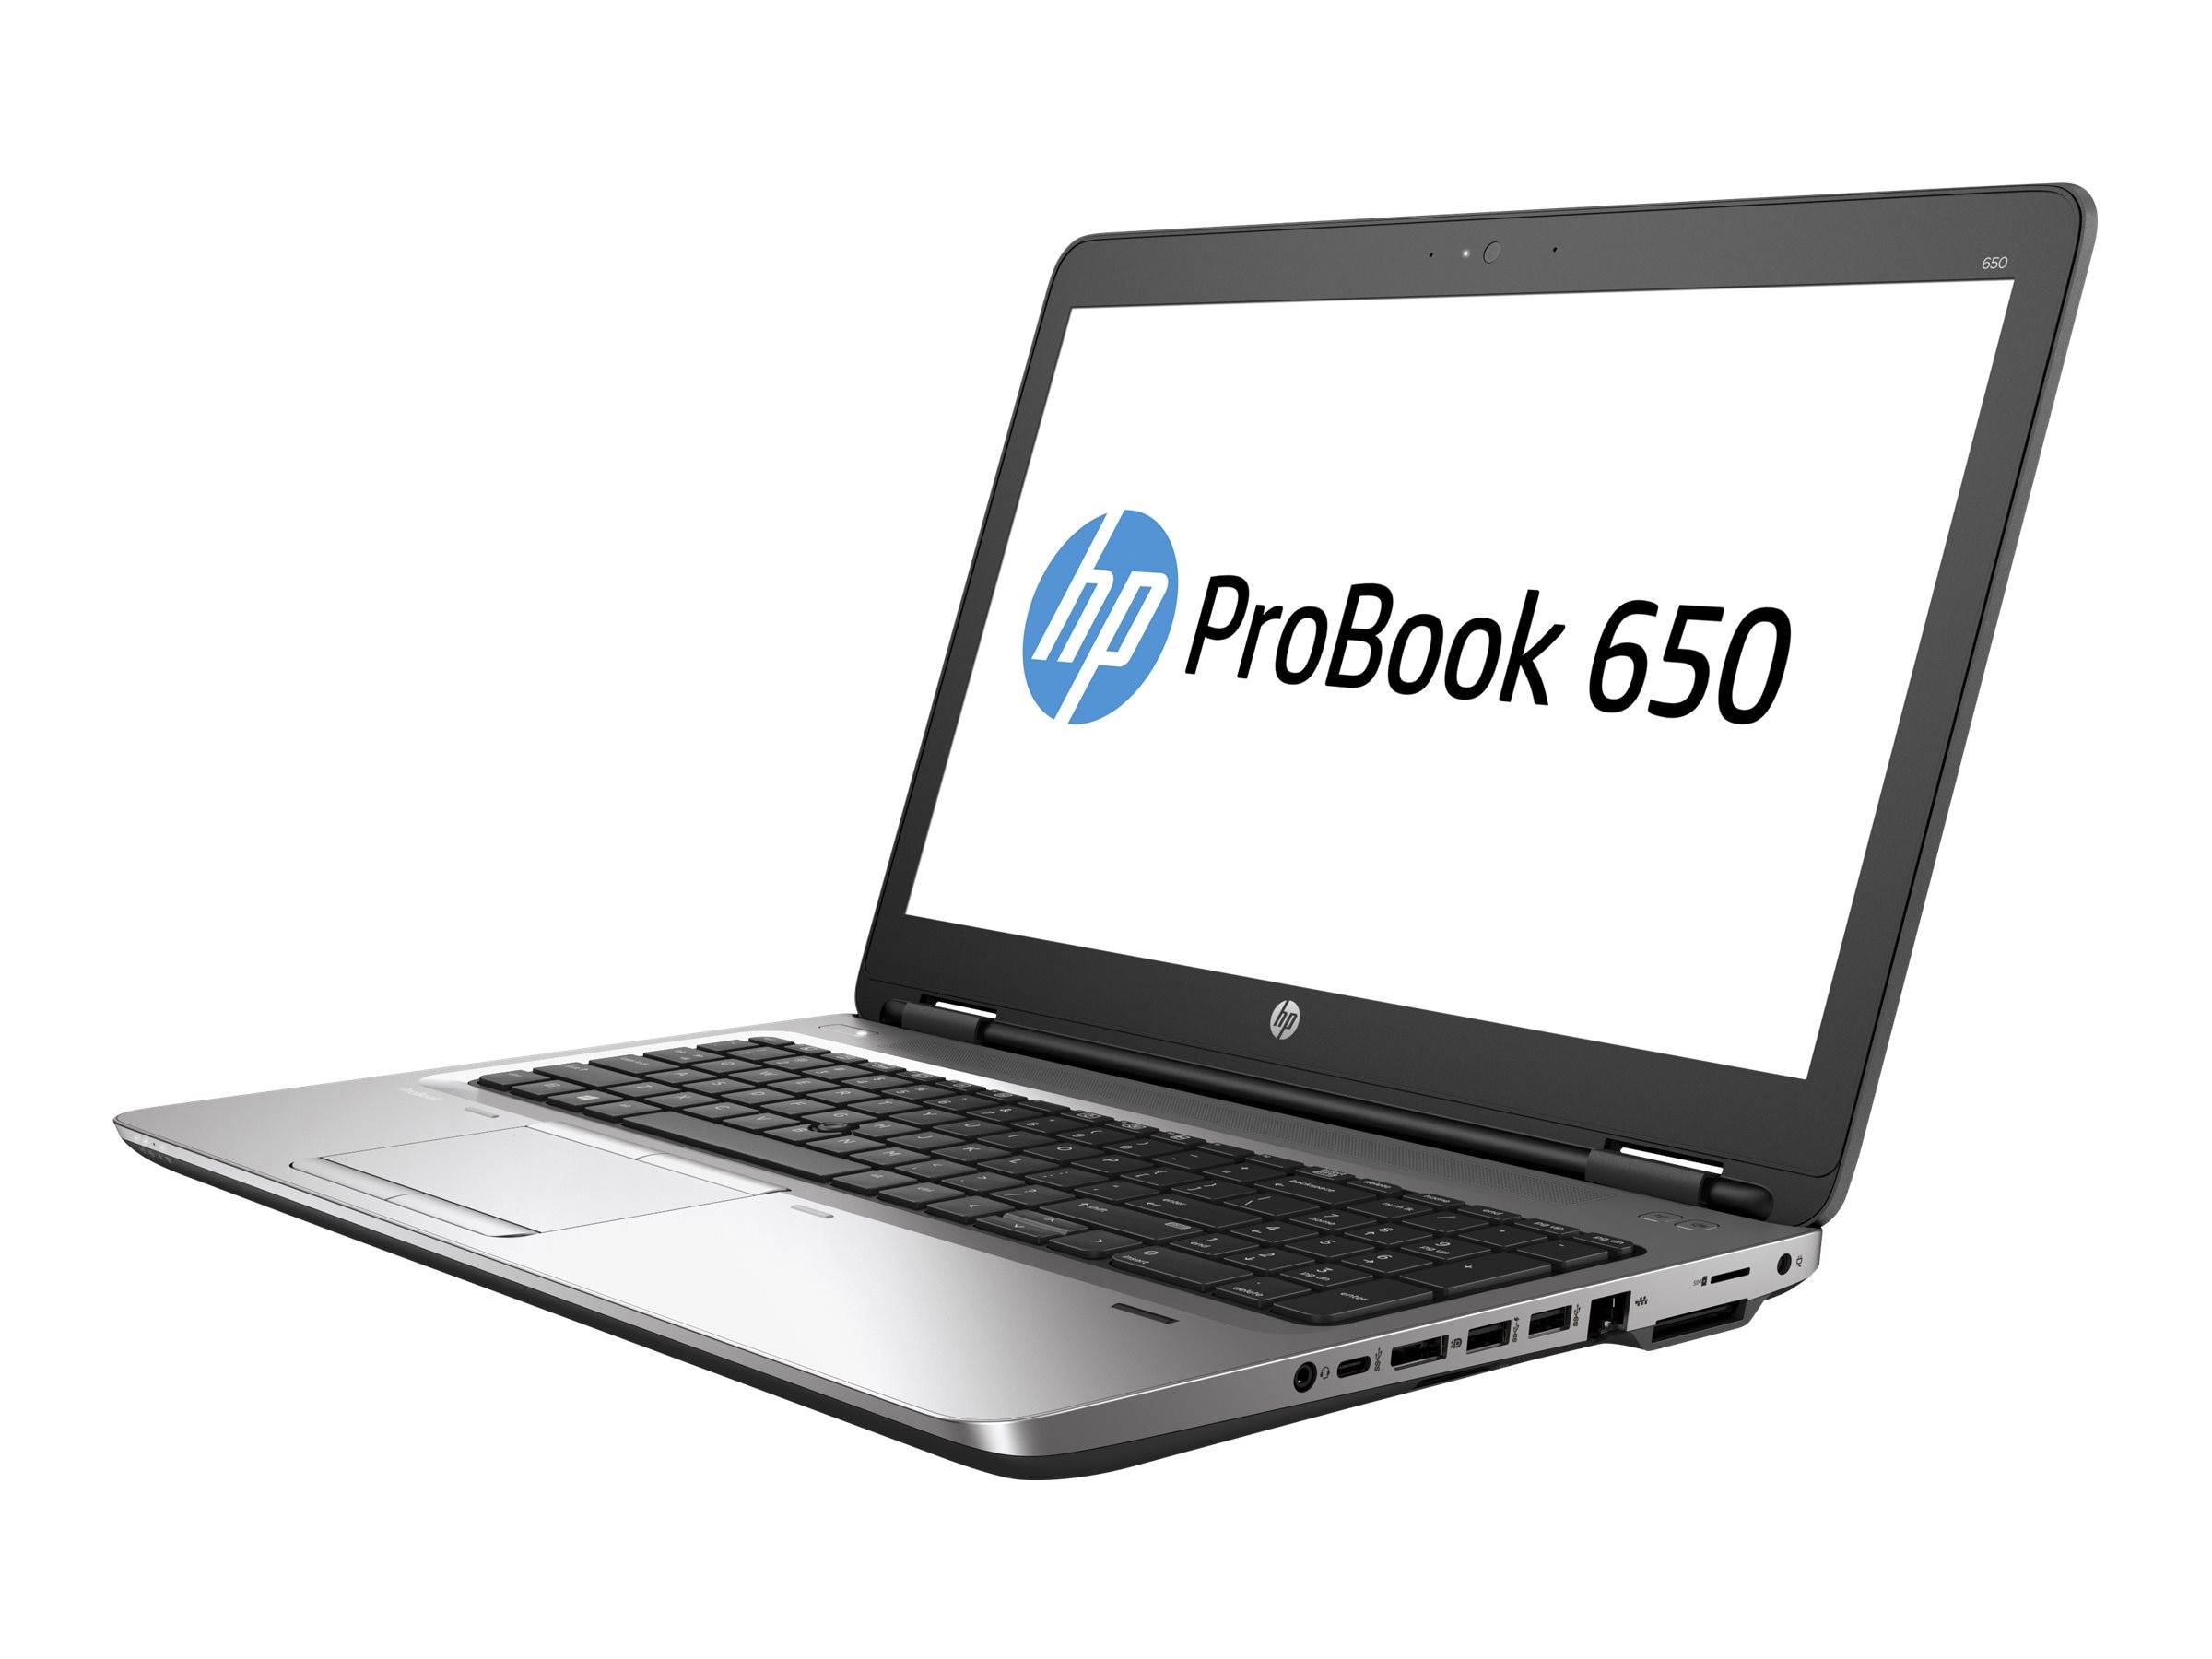 HP ProBook 650 G2 2.6GHz Core i7 15.6in display, V1P80UT#ABA, 30984258, Notebooks